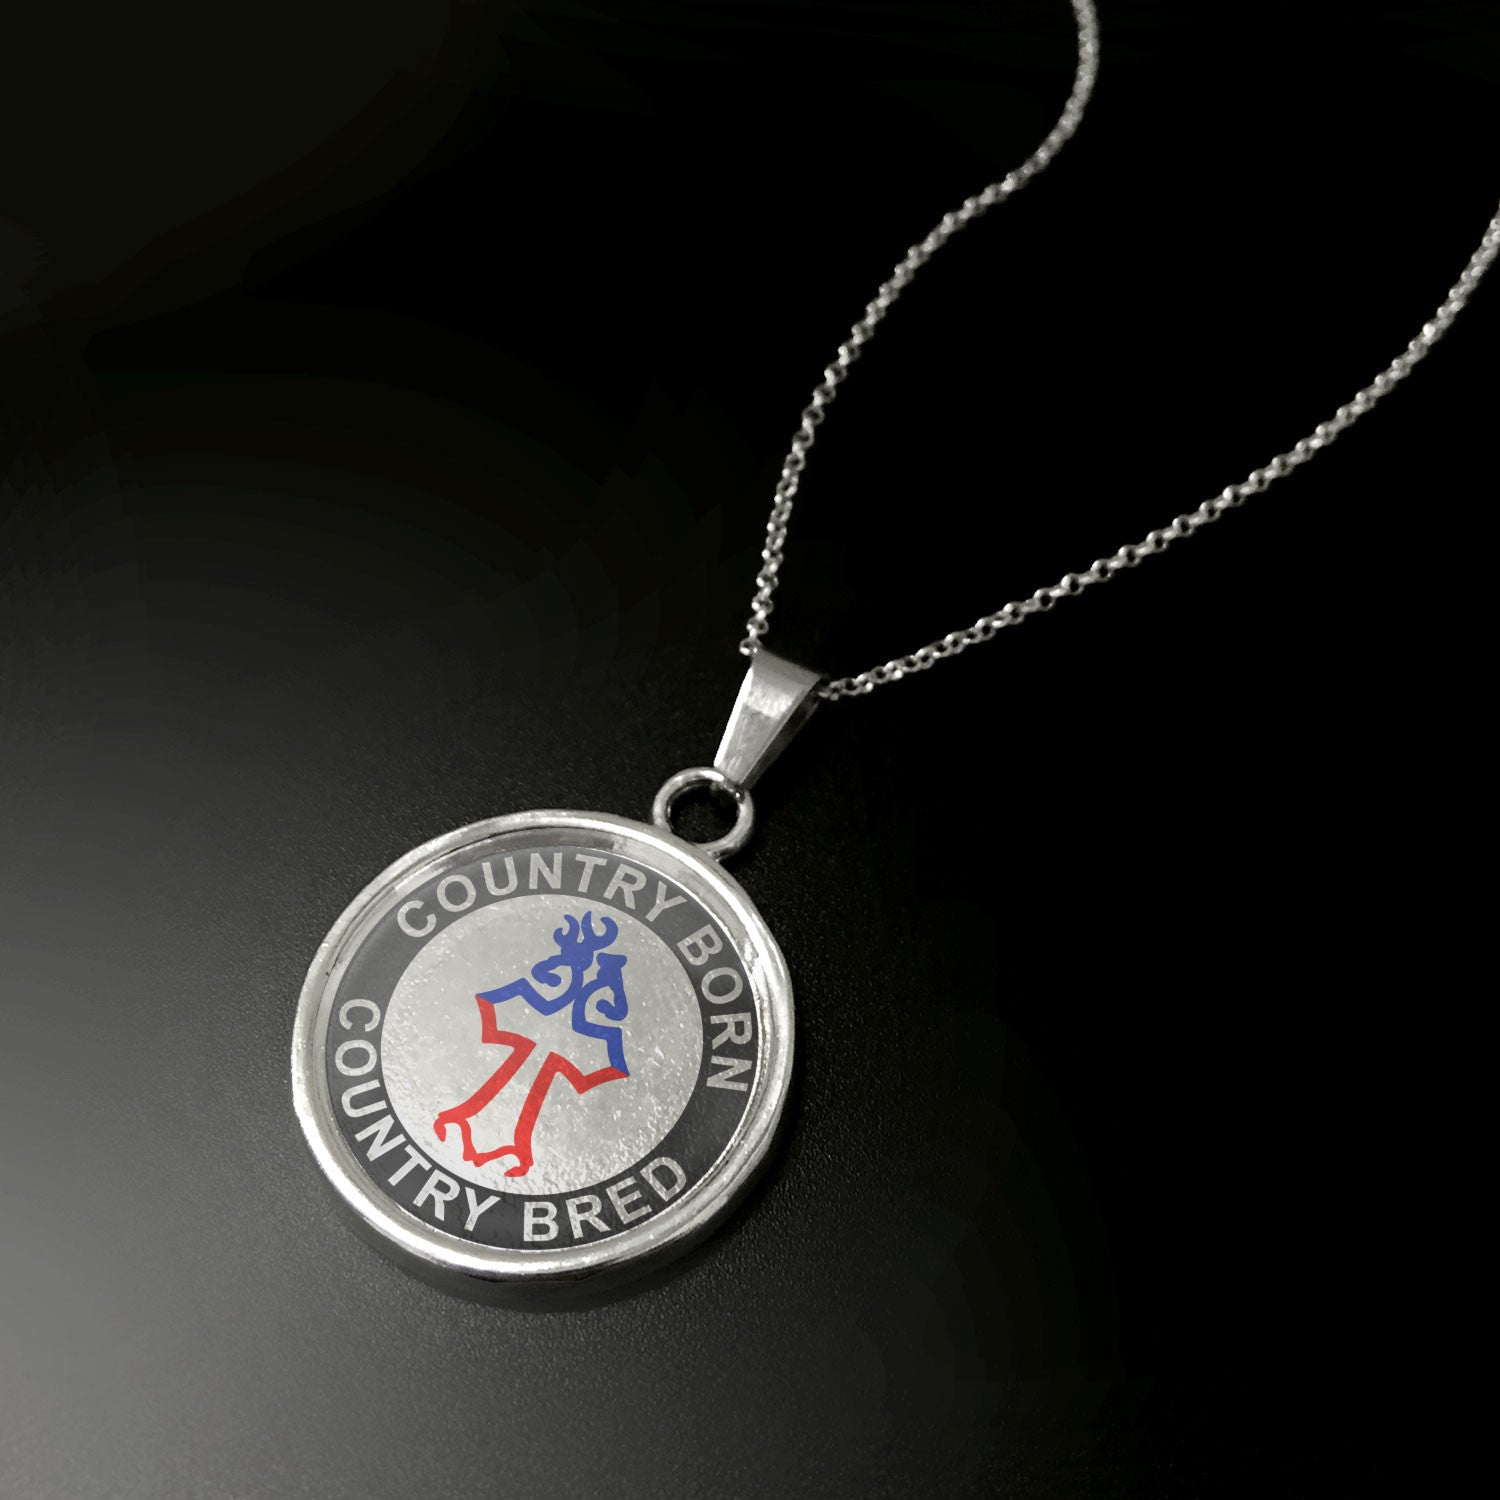 Country Born, Country Bred Pendant